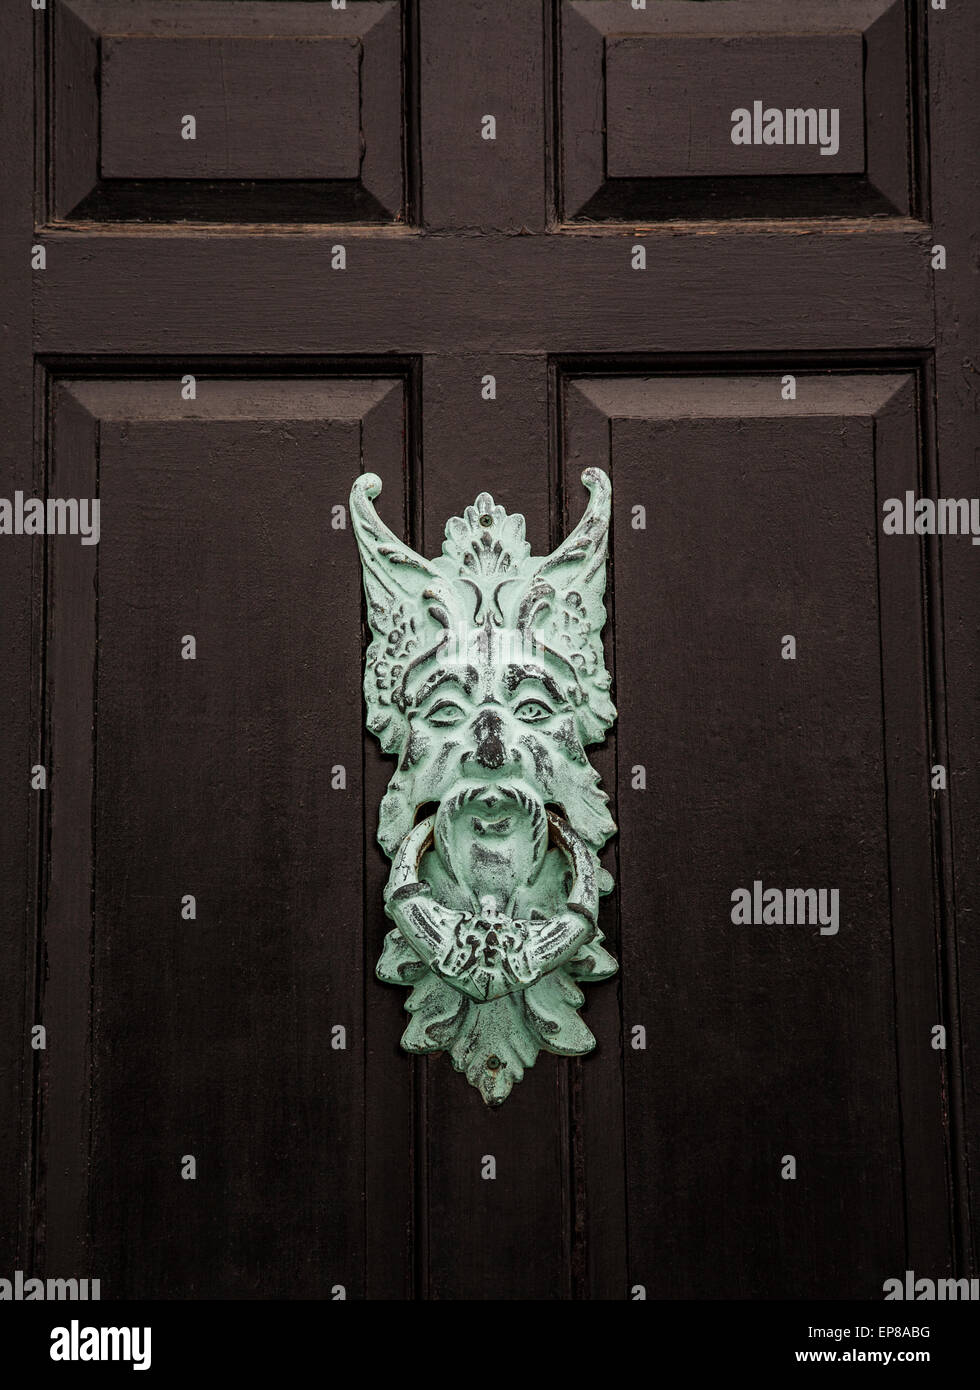 Black wooden front door entrance with a close up Gothic door knocker face and handle, USA, US, spooky door mysterious - Stock Image